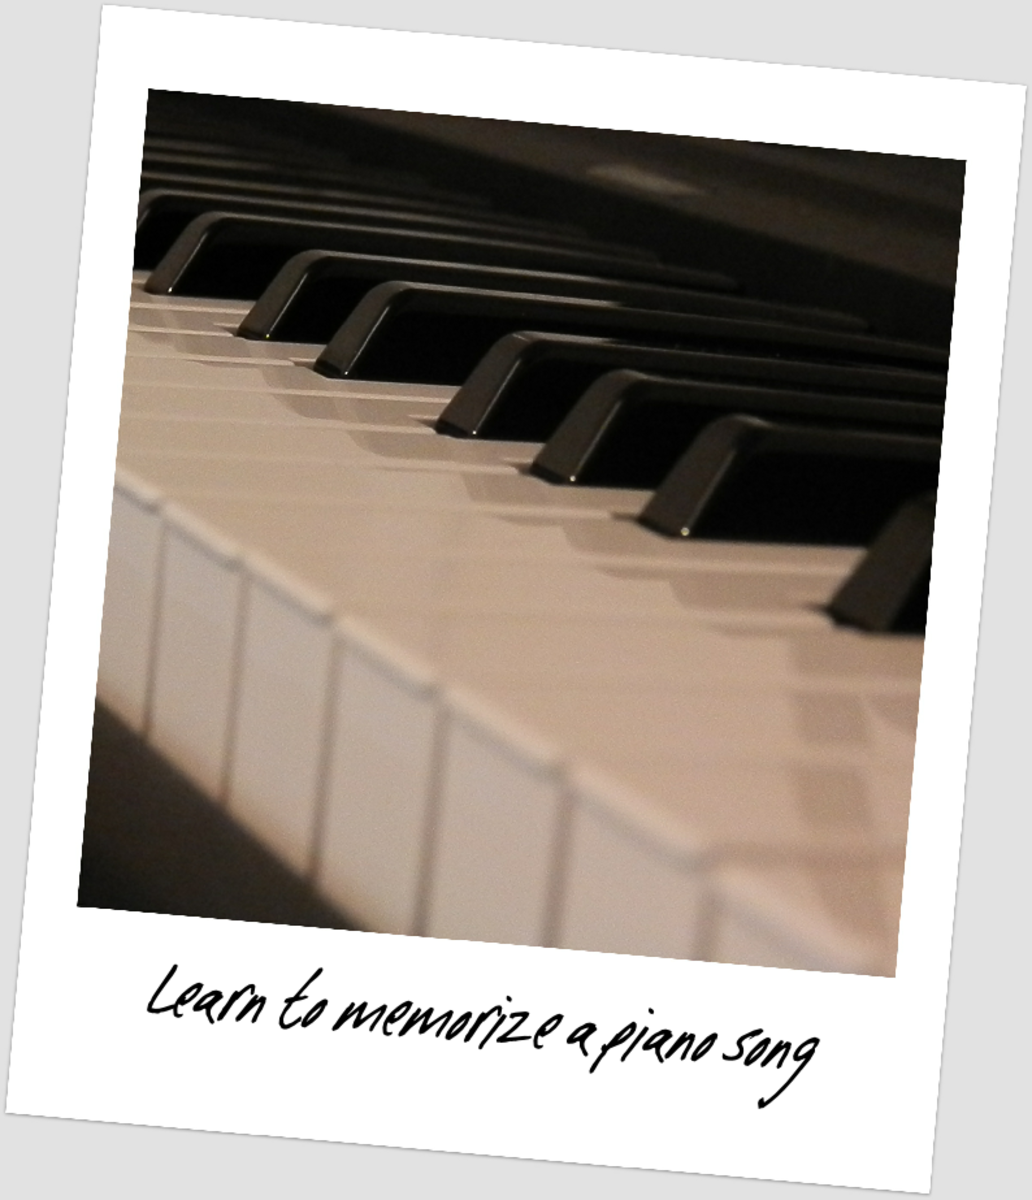 Tips on Memorizing Piano Songs